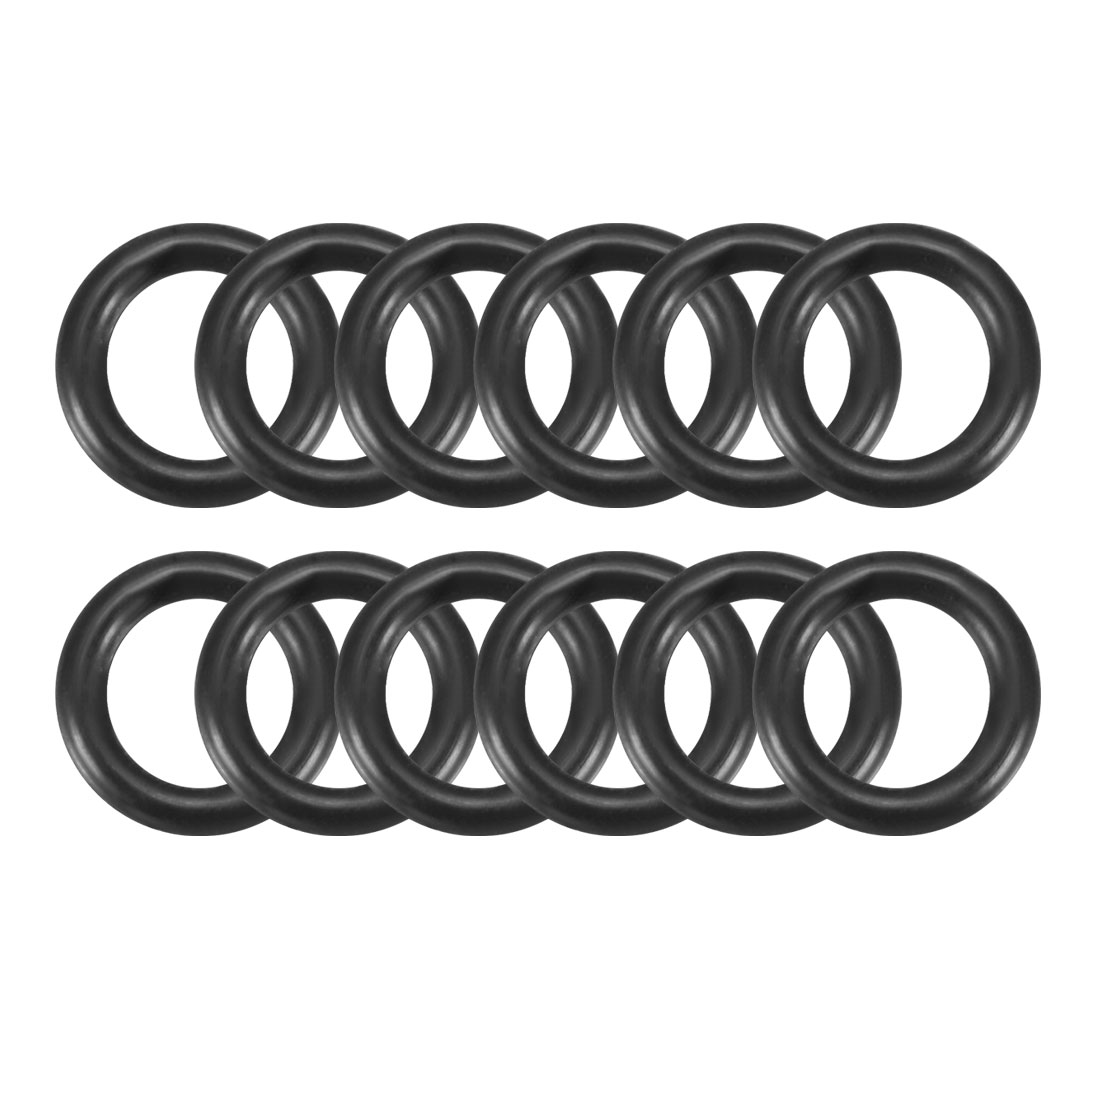 Black 10.5mm x 2.0mm Rubber Sealing Washers Oil Seal O Rings 12 Pcs